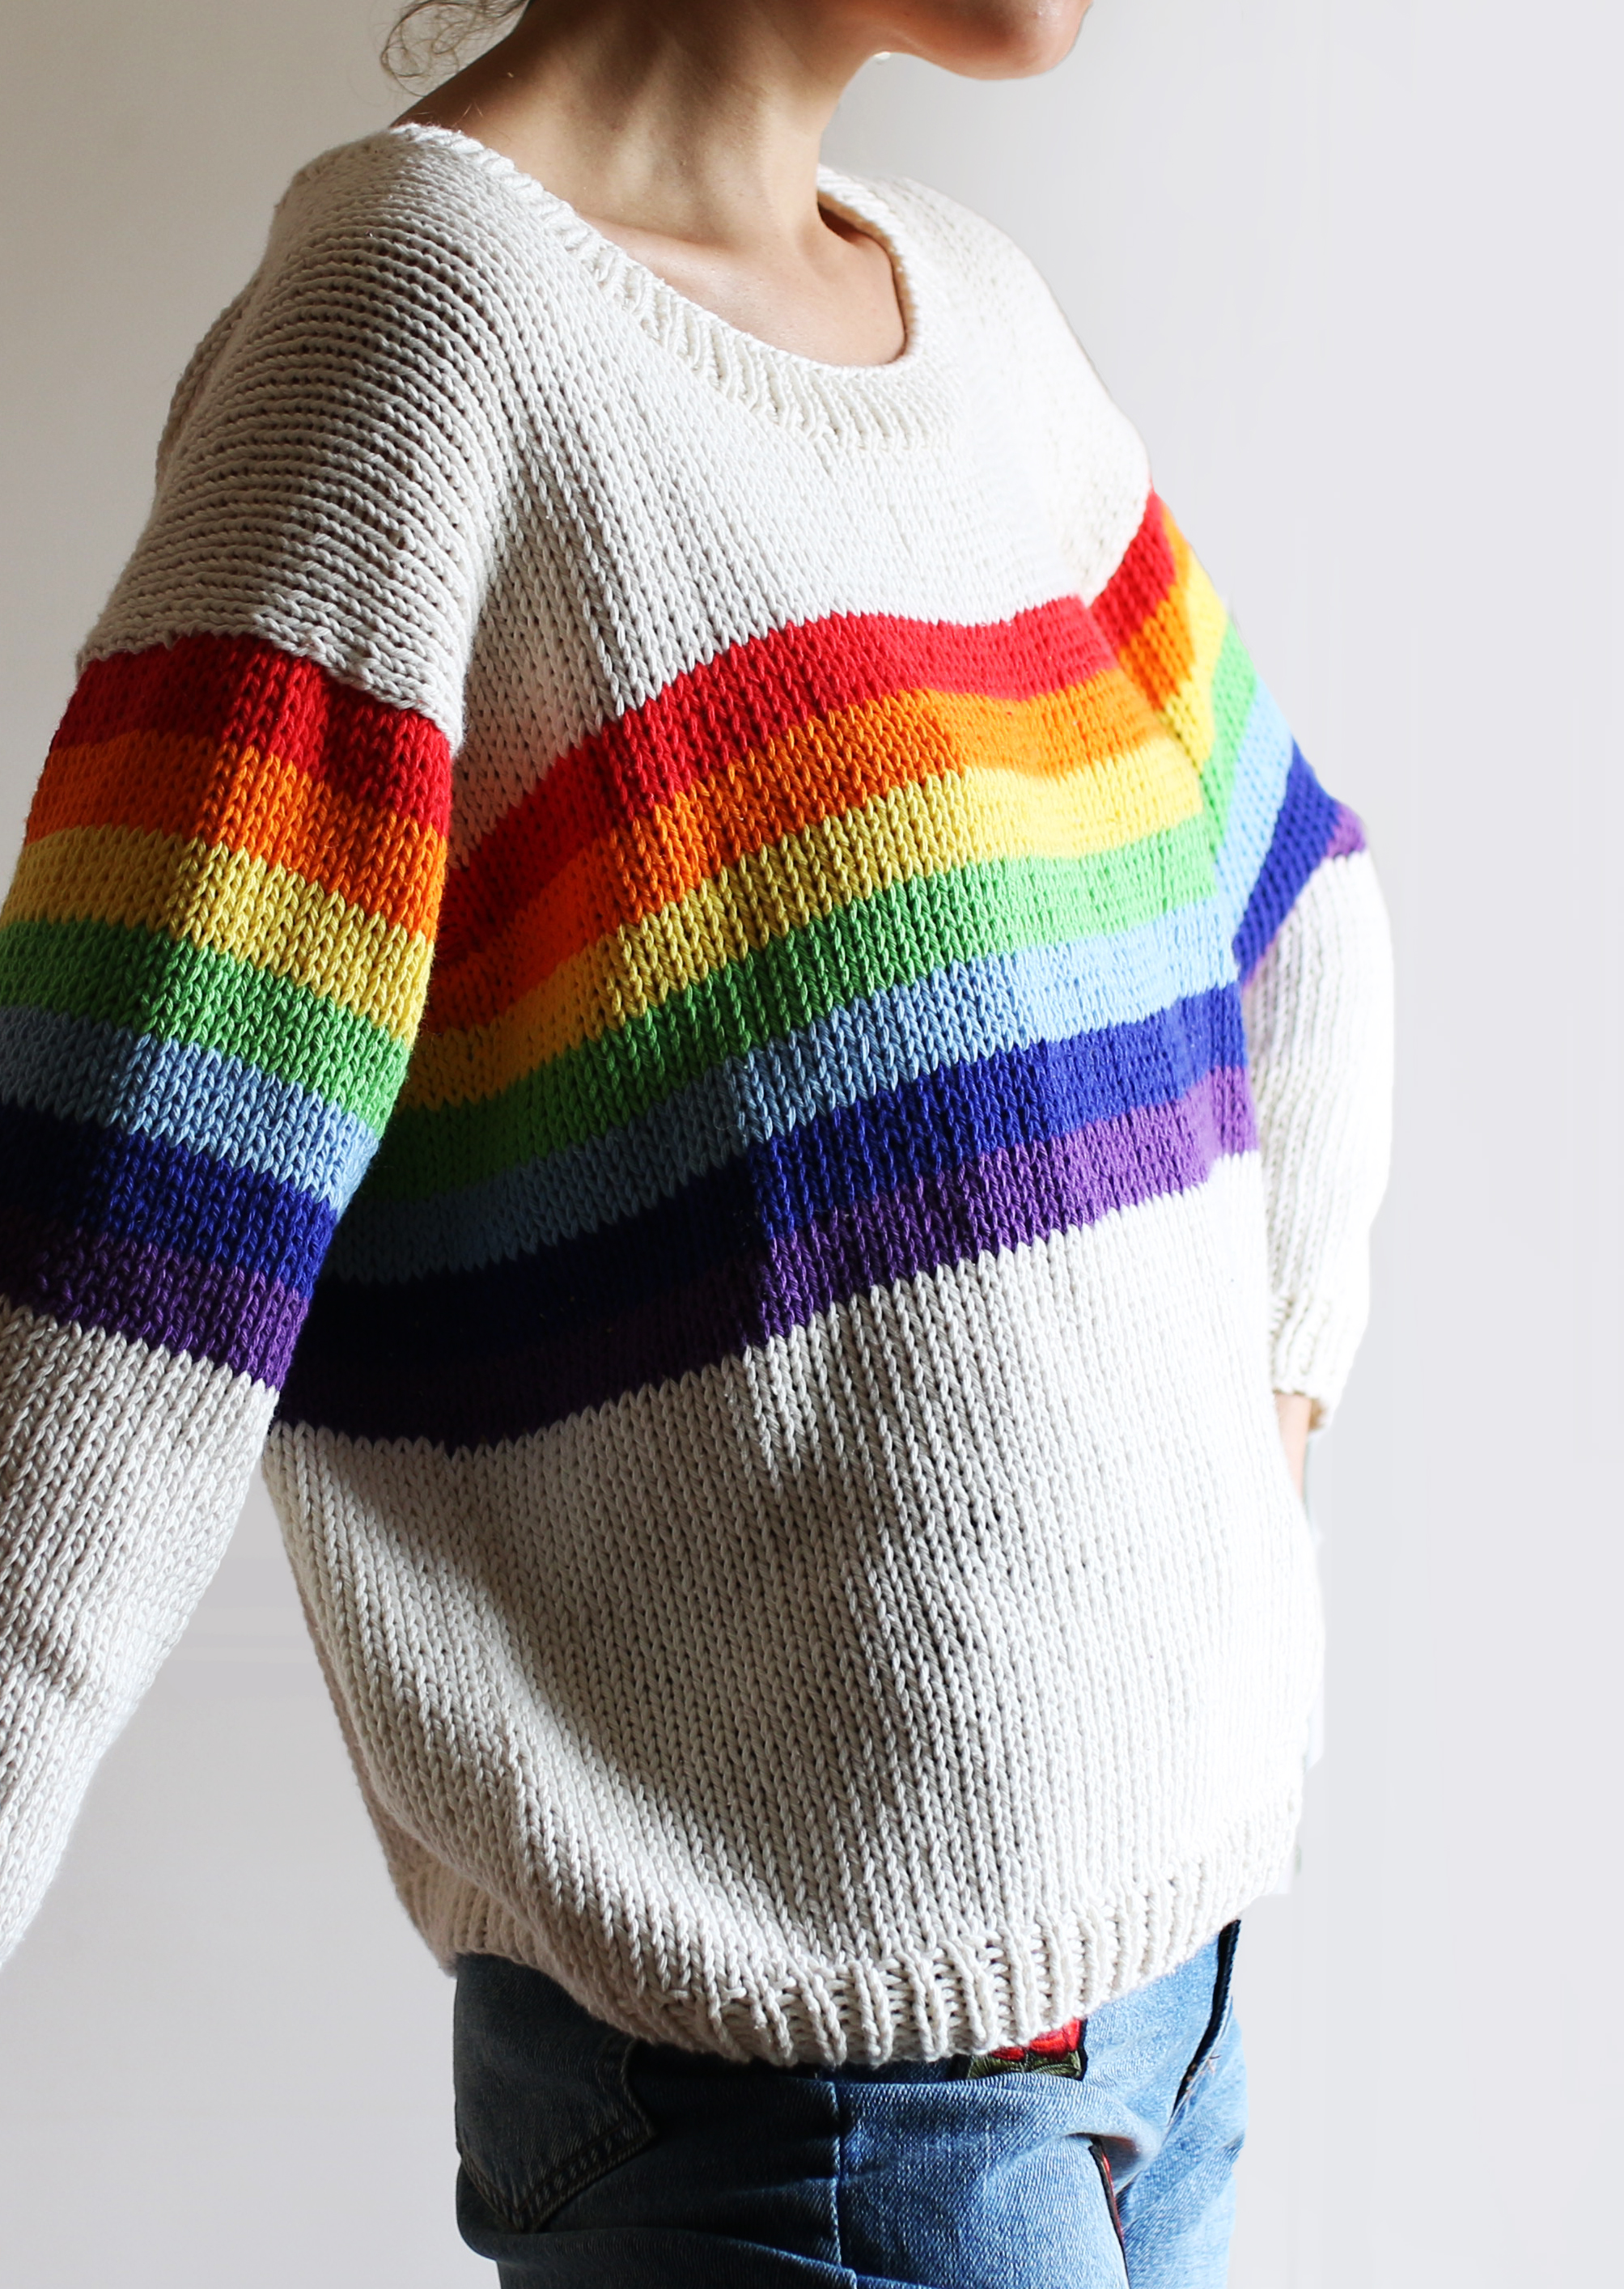 rainbow-sweater-2.jpg